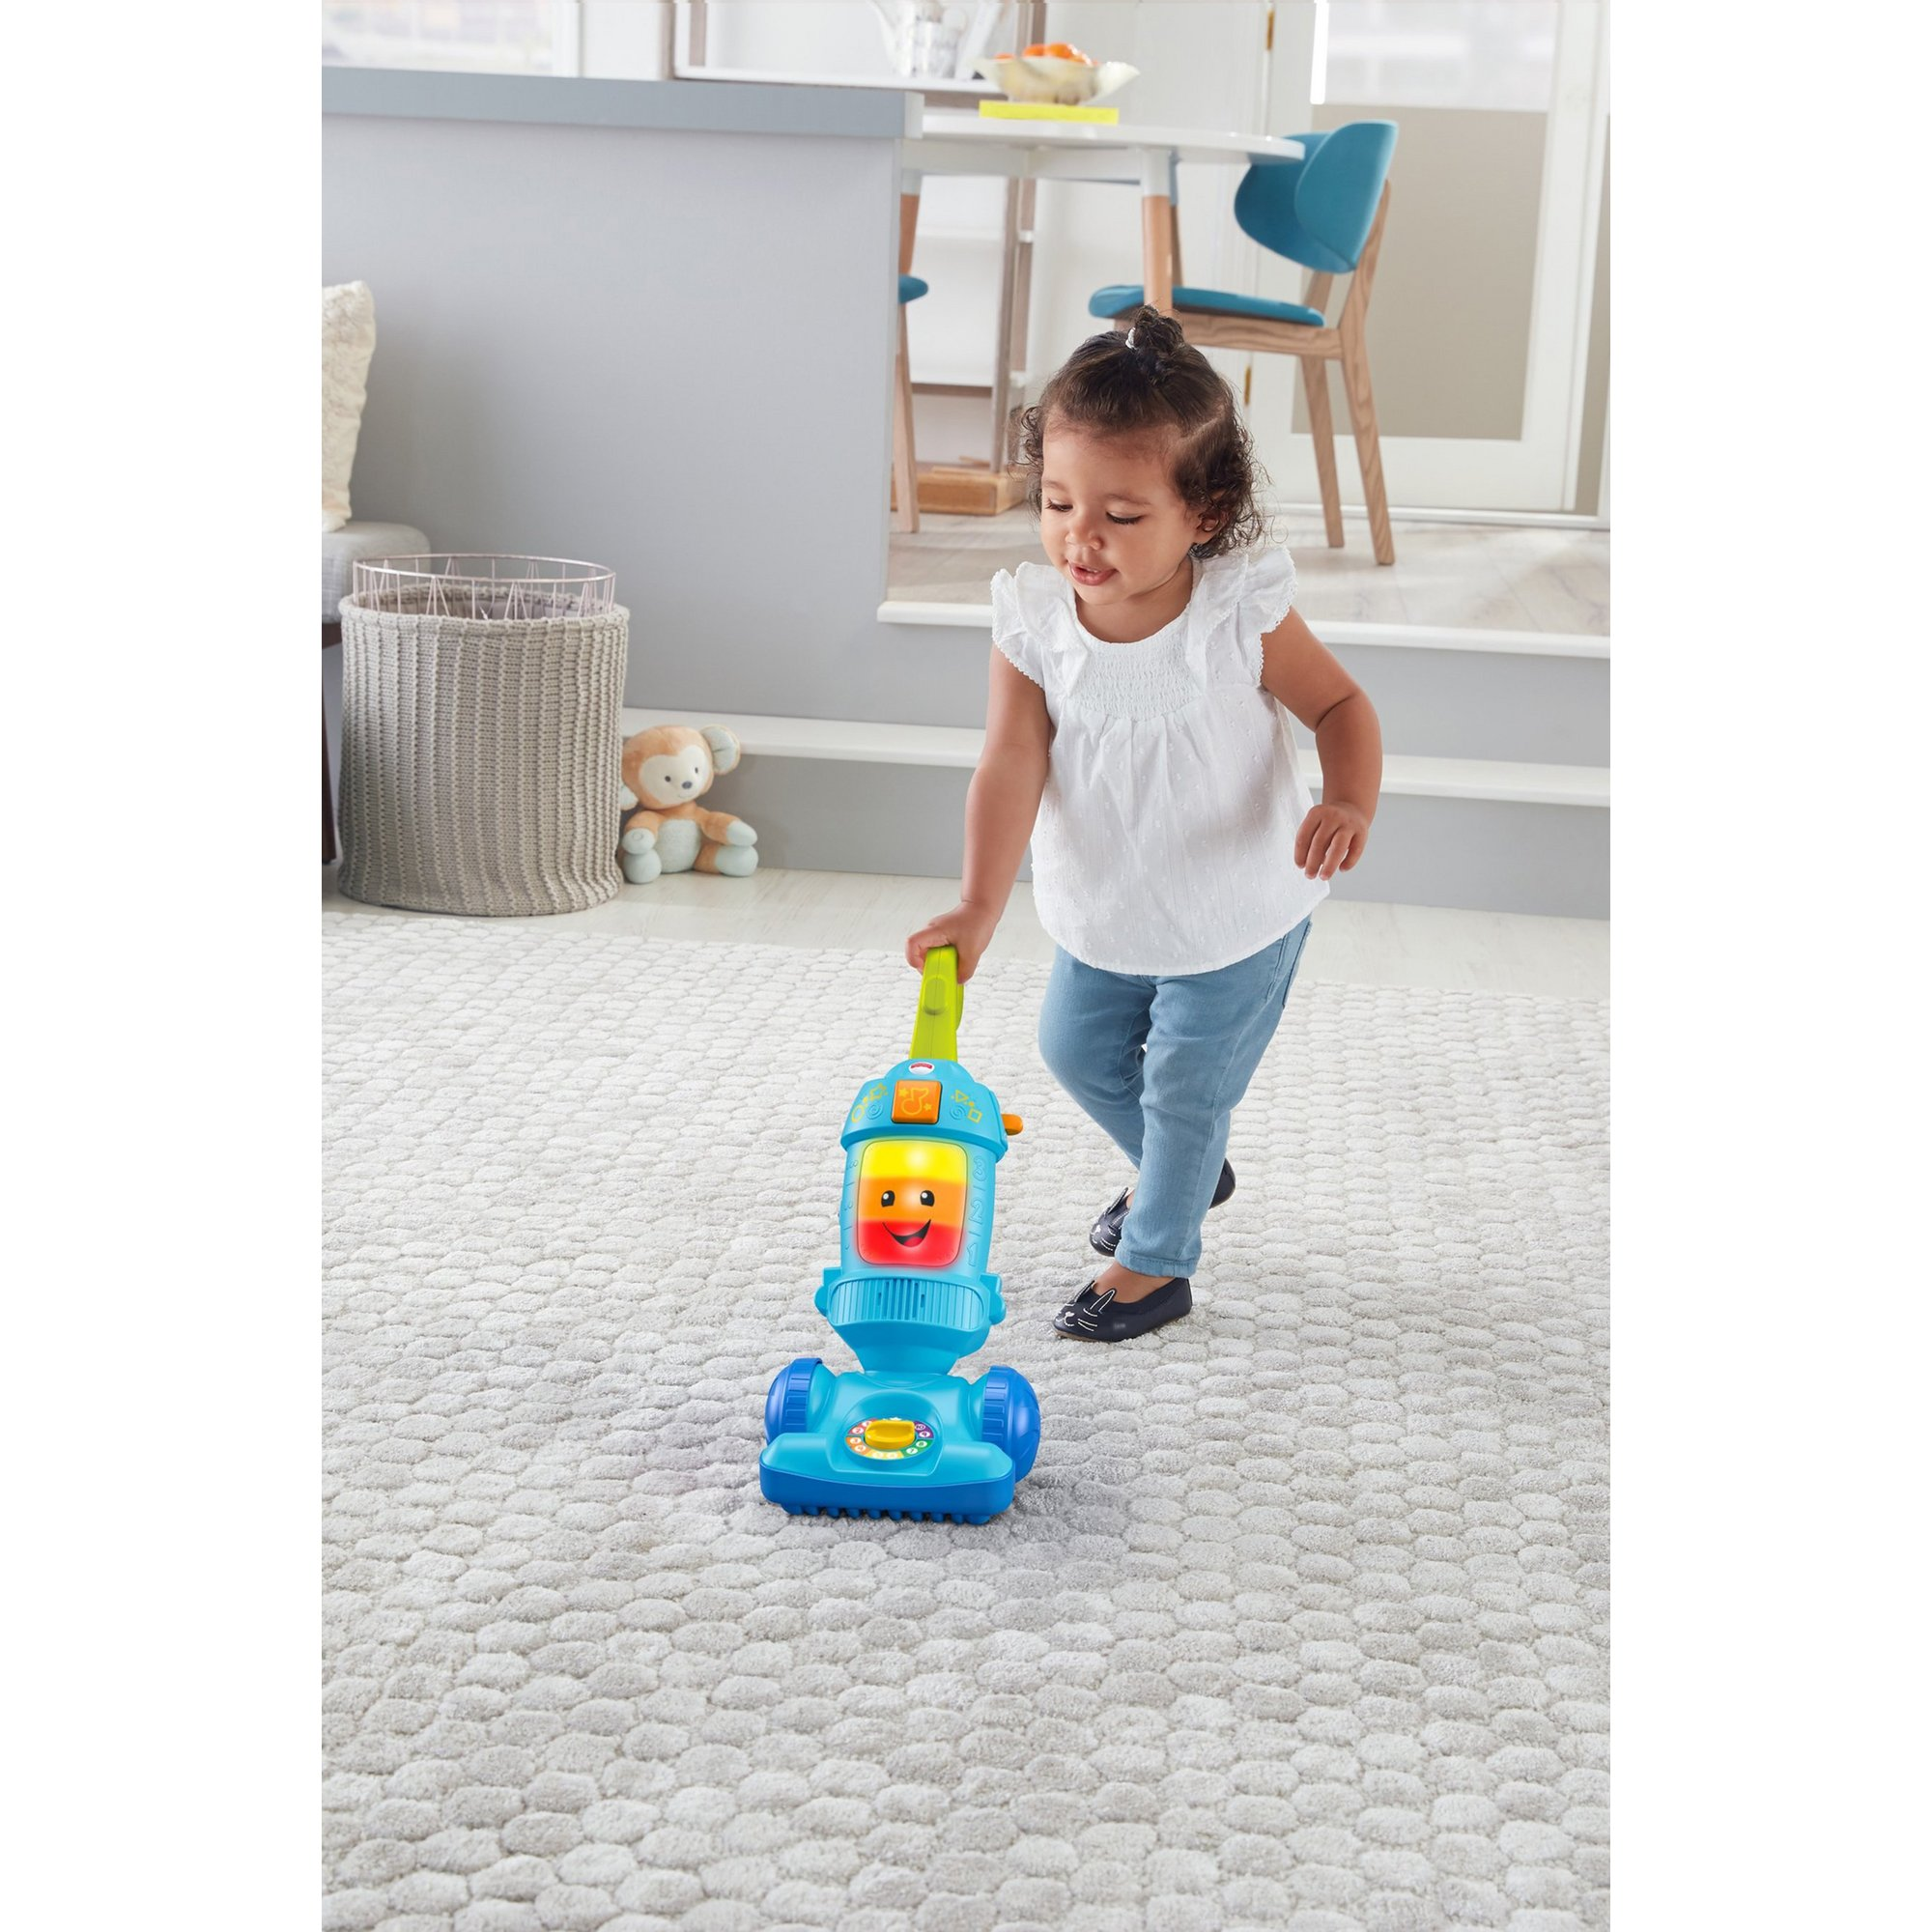 Image of Fisher Price Laugh and Learn Vacuum